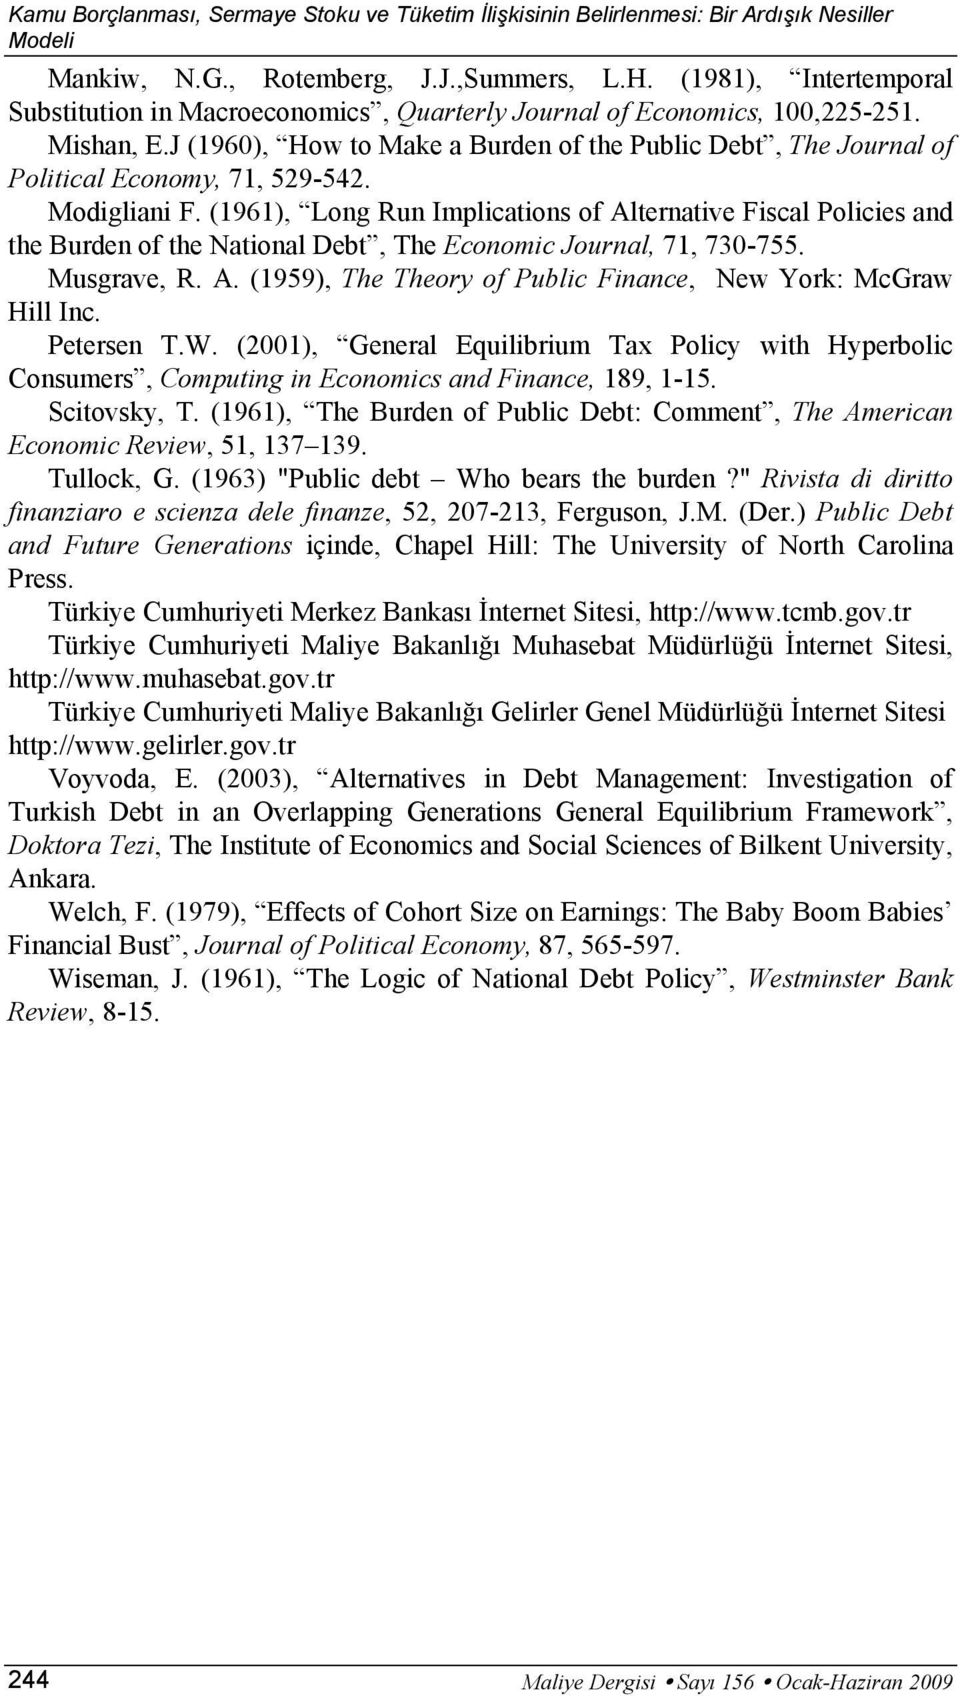 Modigliani F. (1961), Long Run Implicaions of Alernaive Fiscal Policies and he Burden of he Naional Deb, The Economic Journal, 71, 730-755. Musgrave, R. A. (1959), The Theory of Public Finance, New York: McGraw Hill Inc.